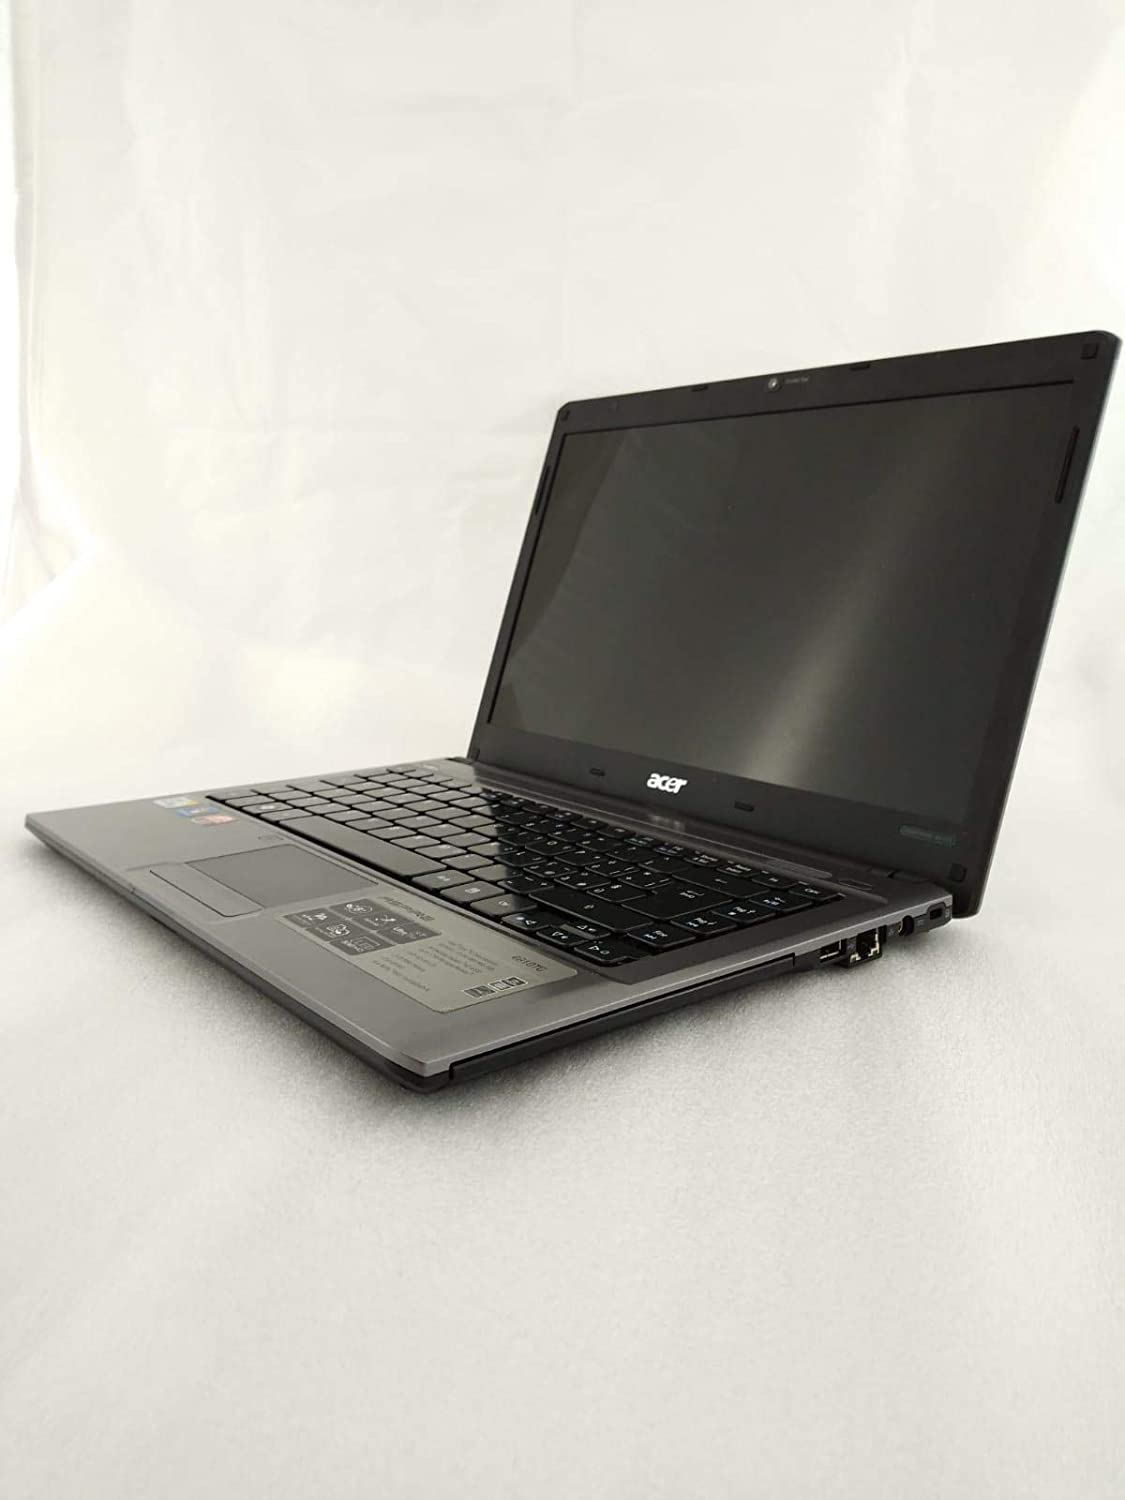 Acer Aspire 4810TG Core 2 Duo 6GB RAM 120GB SSD Win 7 Professional ...